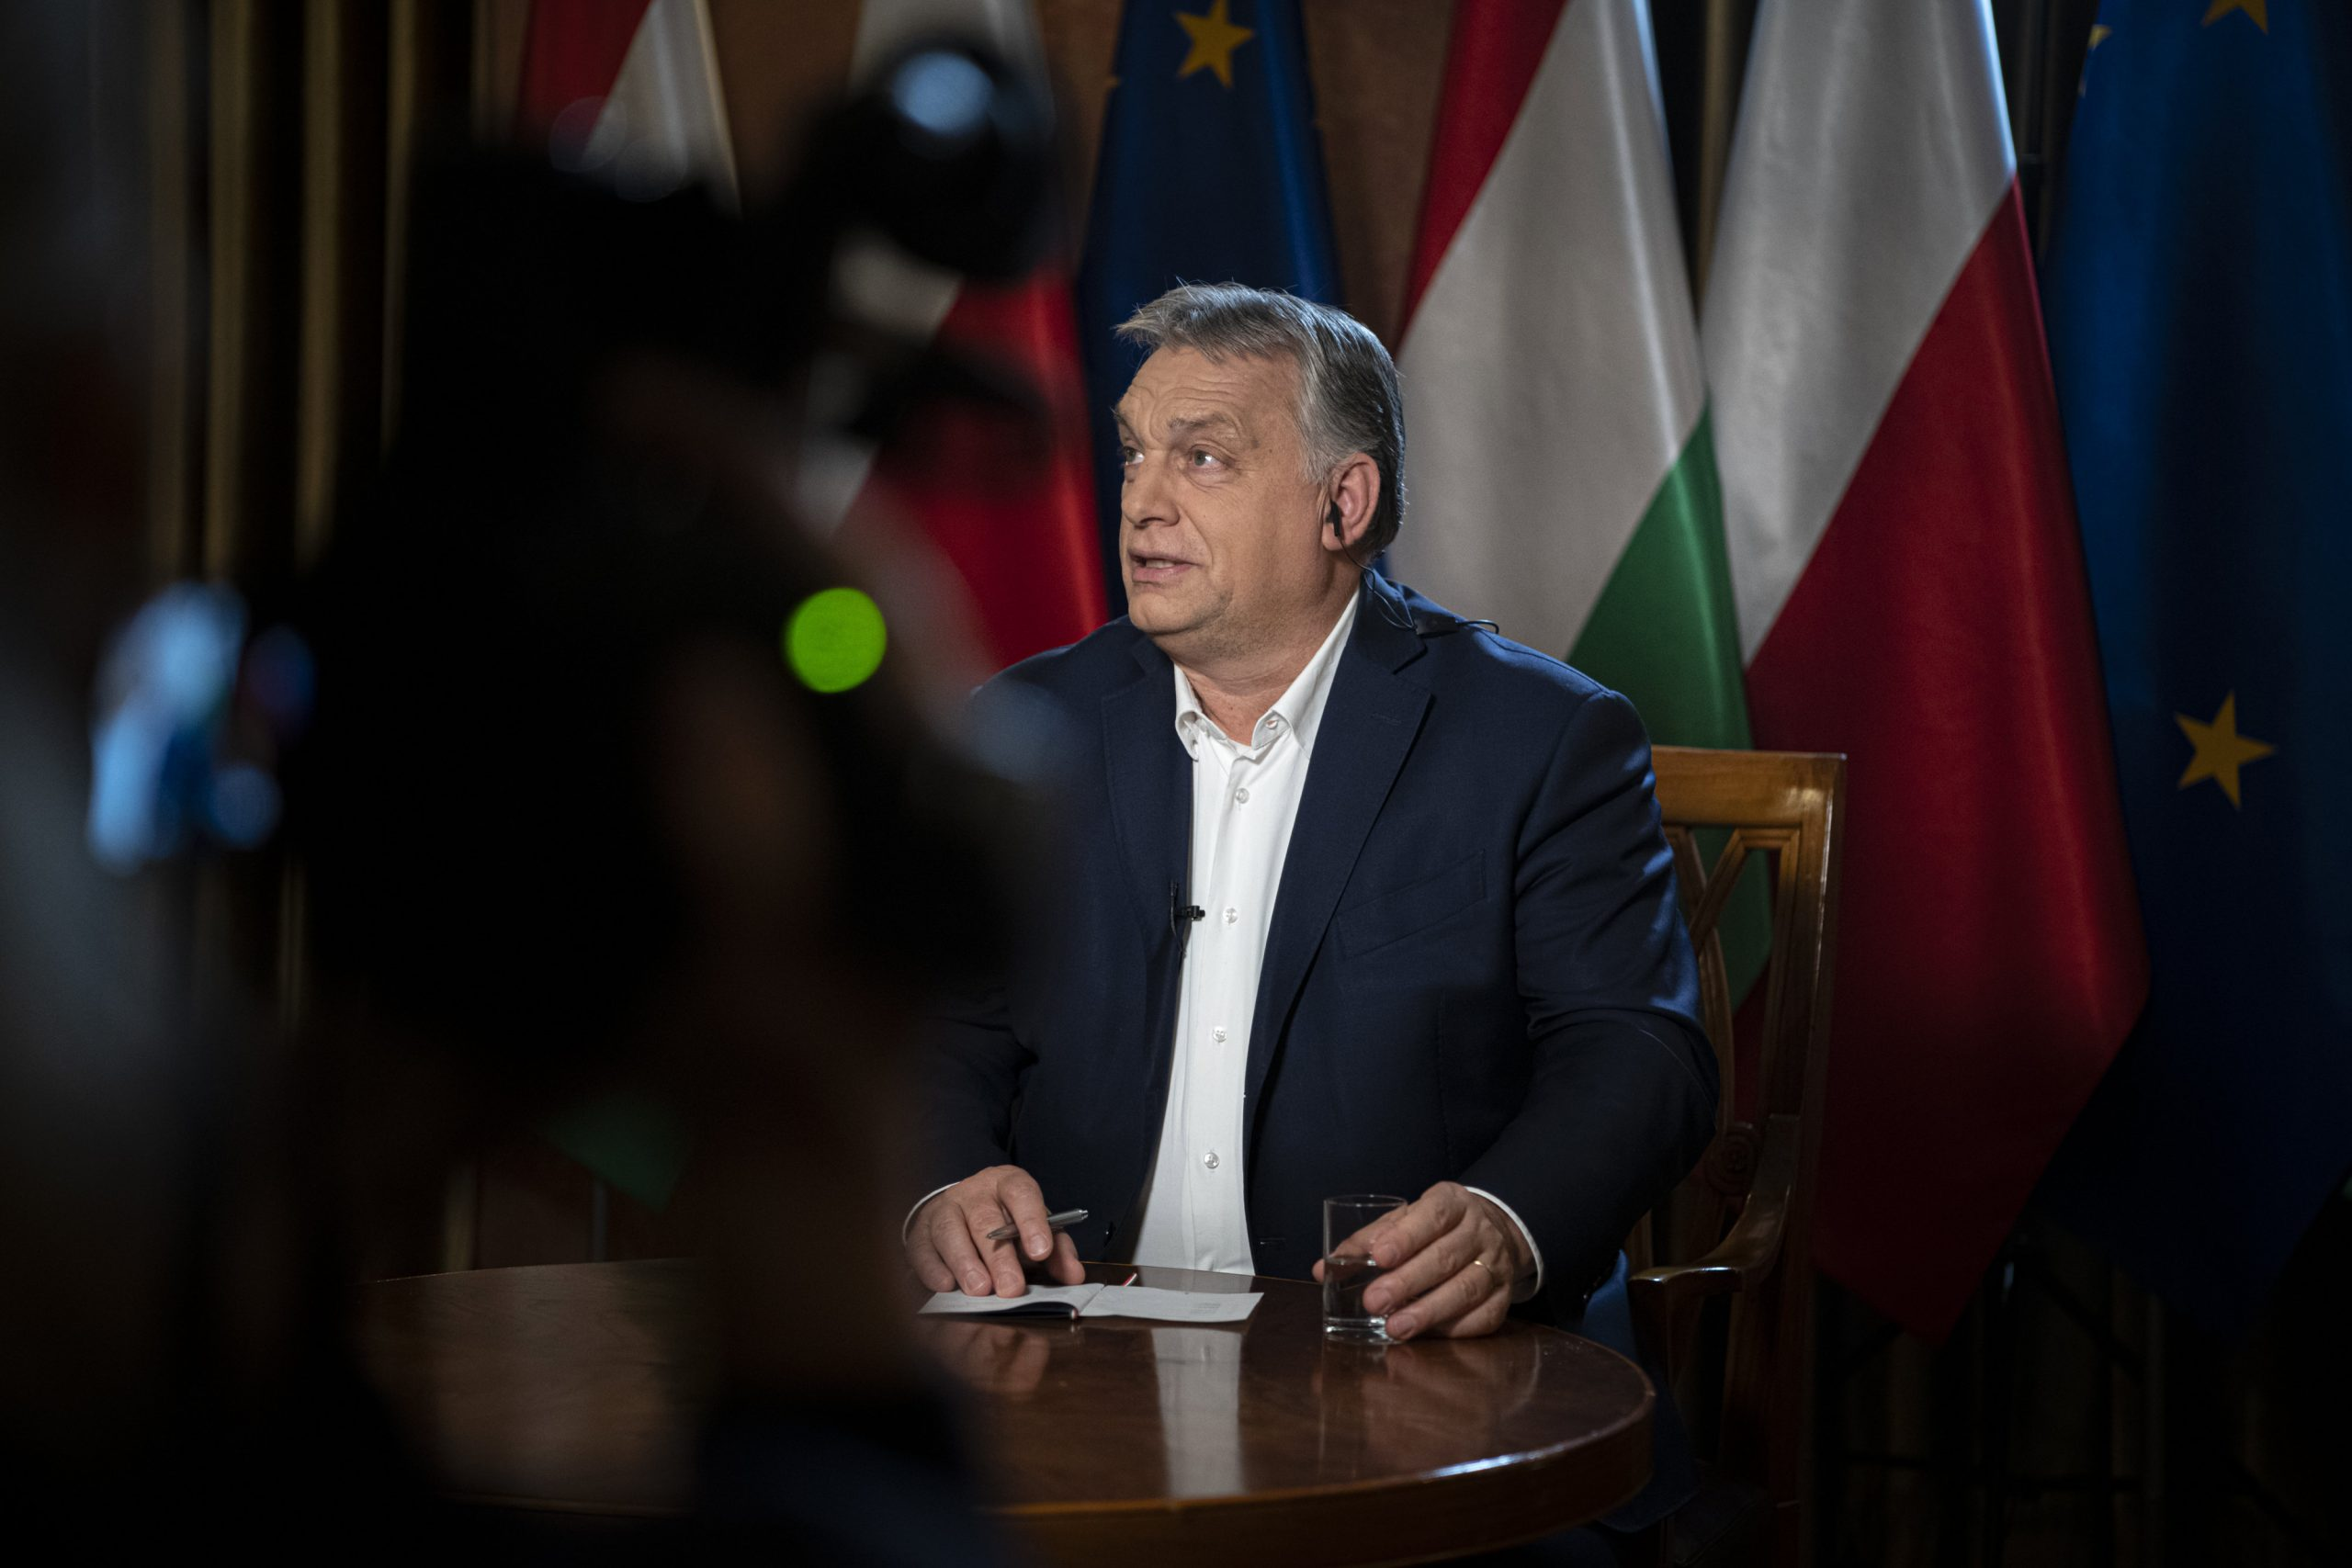 PM Orbán Congratulates New CDU Head Laschet